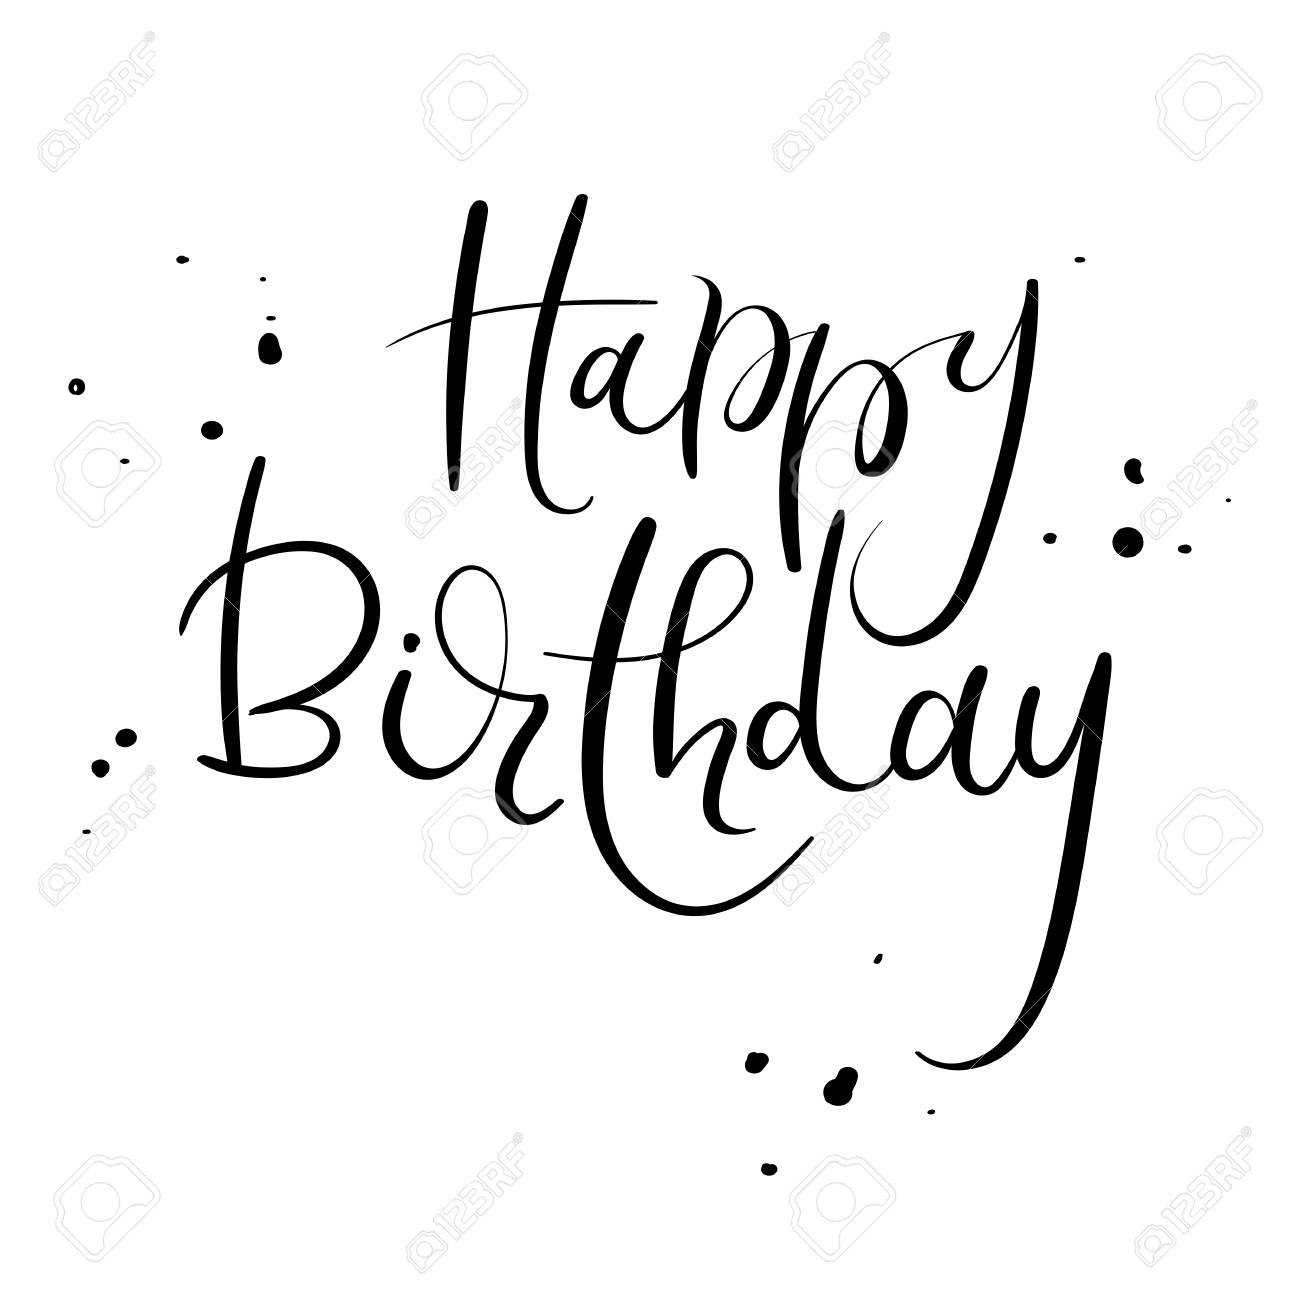 Happy Birthday Calligraphy Inscription Handwritten Brush Ink Text For Greeting Card Stock Vector